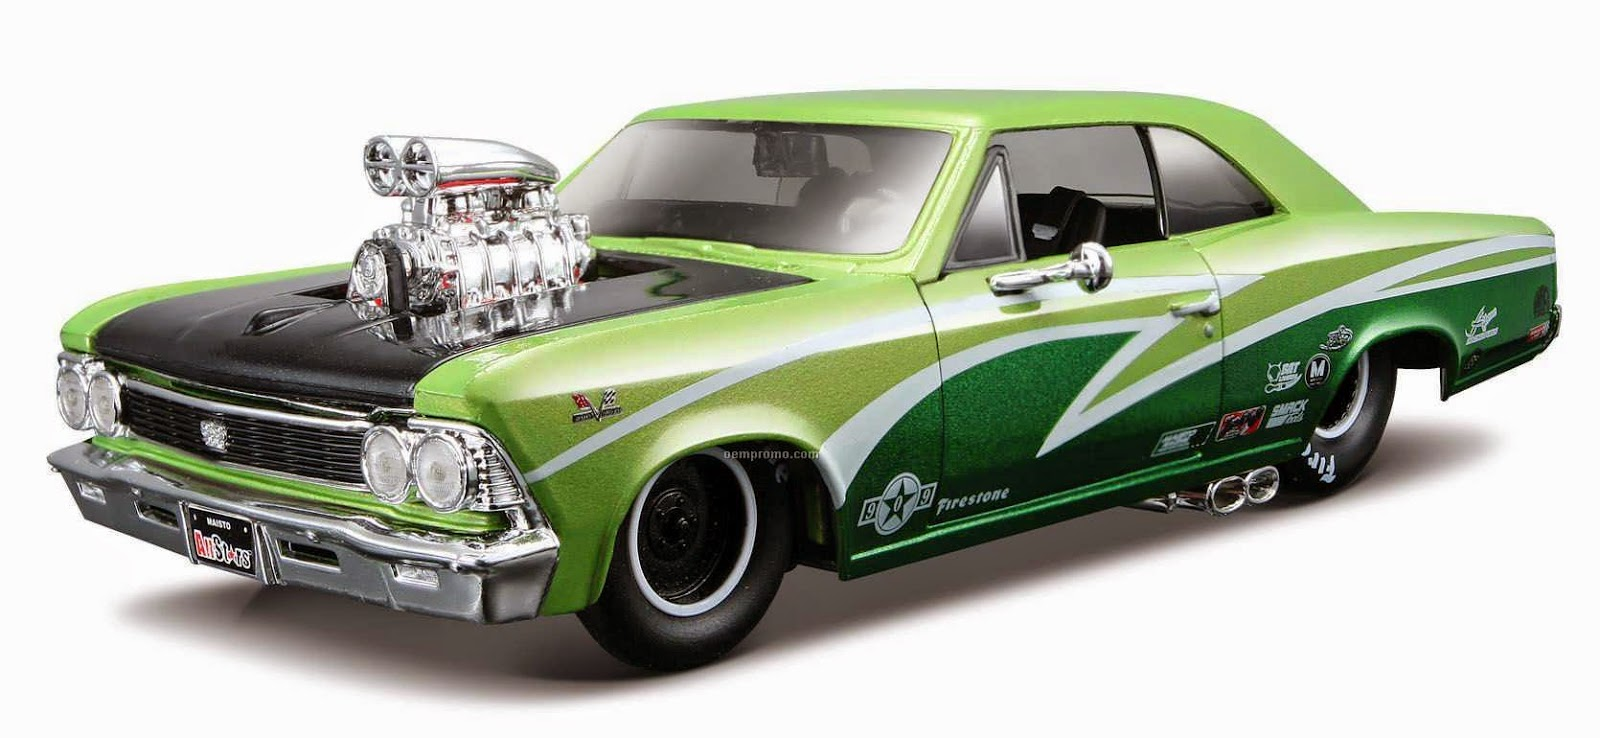 Super sport american muscle classic car chevrolet chevelle for Car classic american